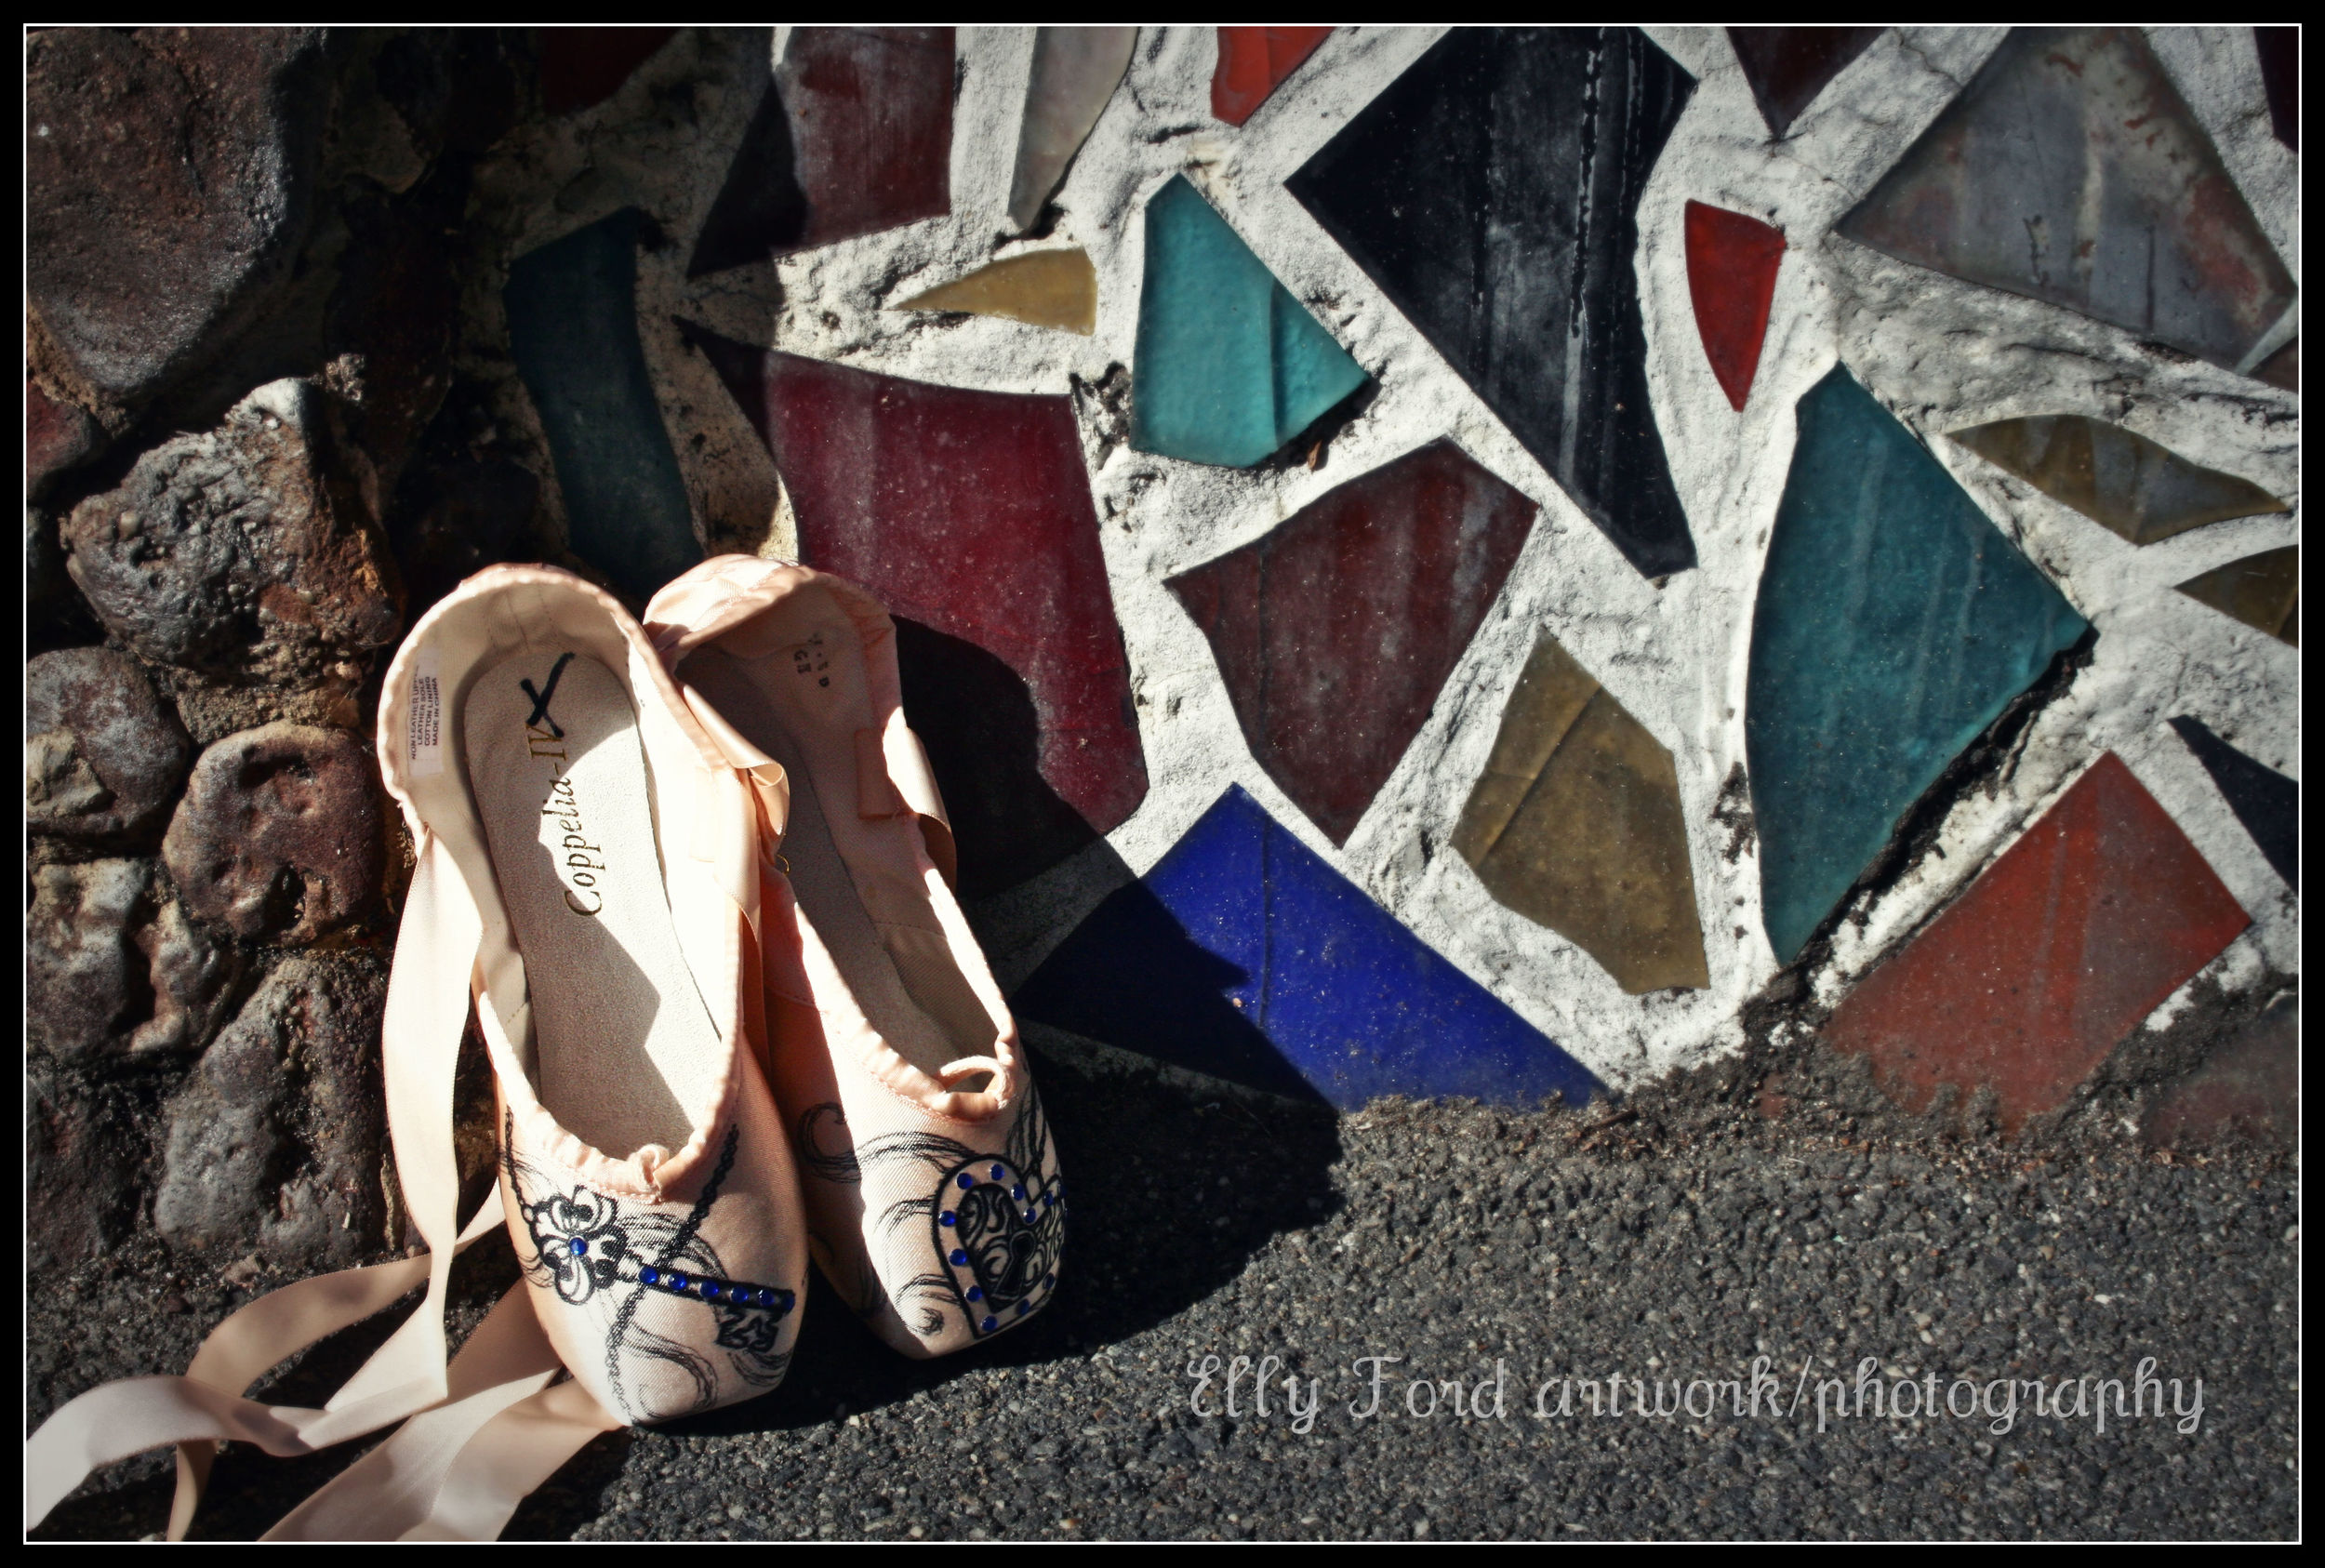 The next morning a few of the shoes decided to compete for who could find the most colourful backdrop...